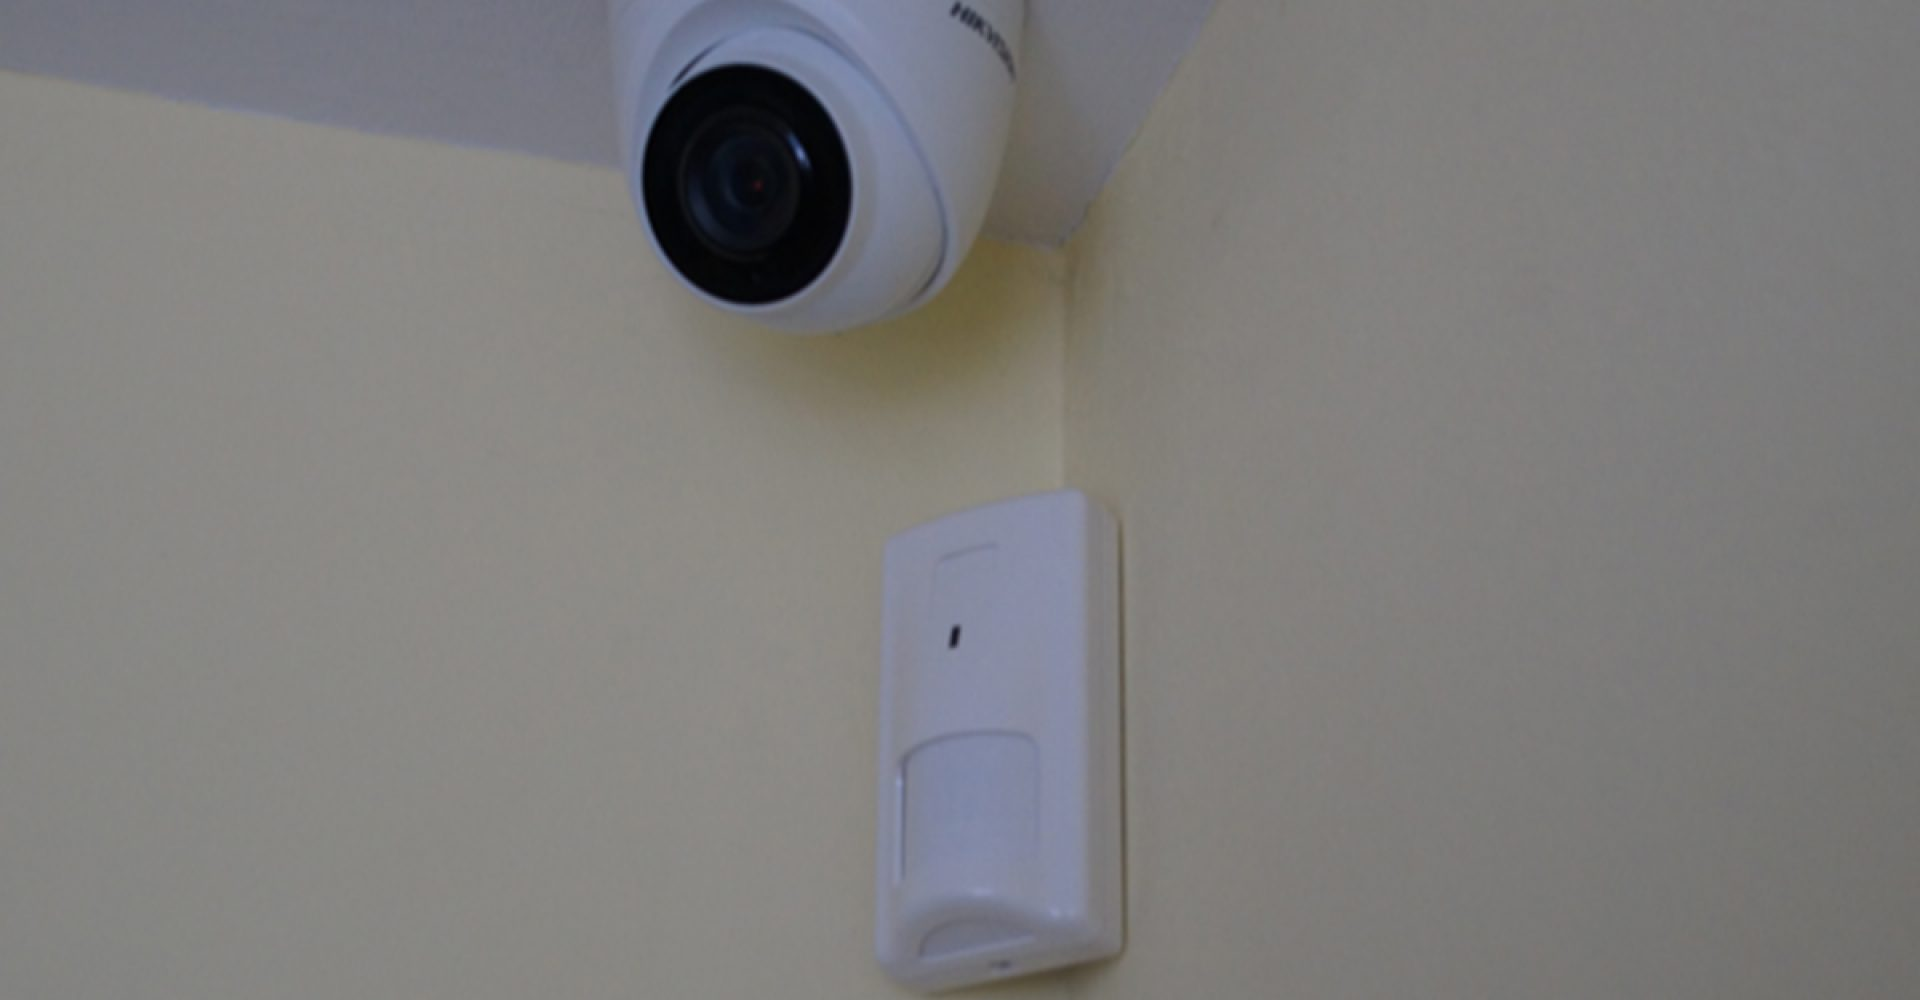 Home Security Systems: Facts and Tips.